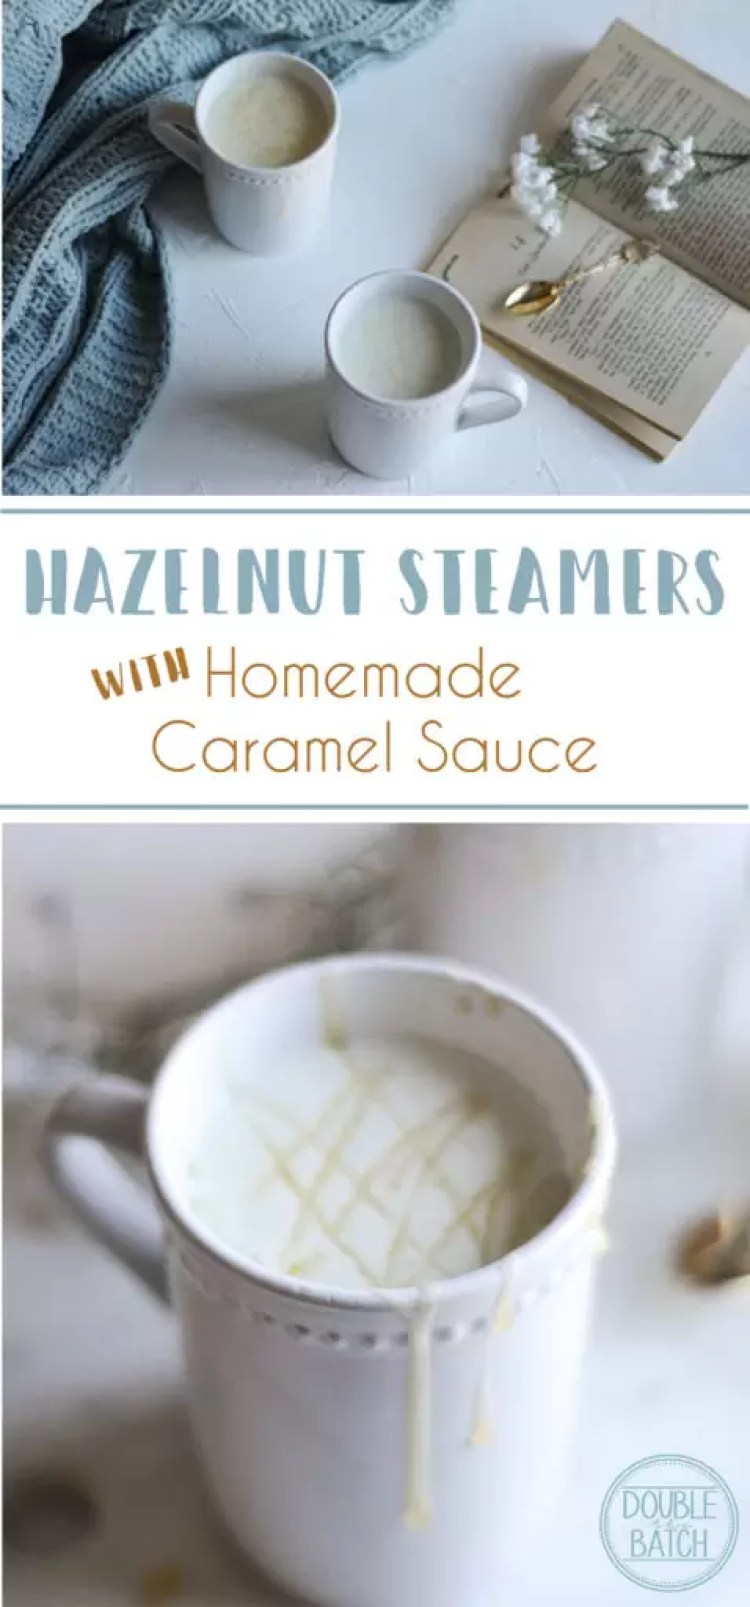 This creamy hazelnut steamer is the perfect winter pick me up for people who don't drink coffee, but love a hot creamy drink when it's cold out.